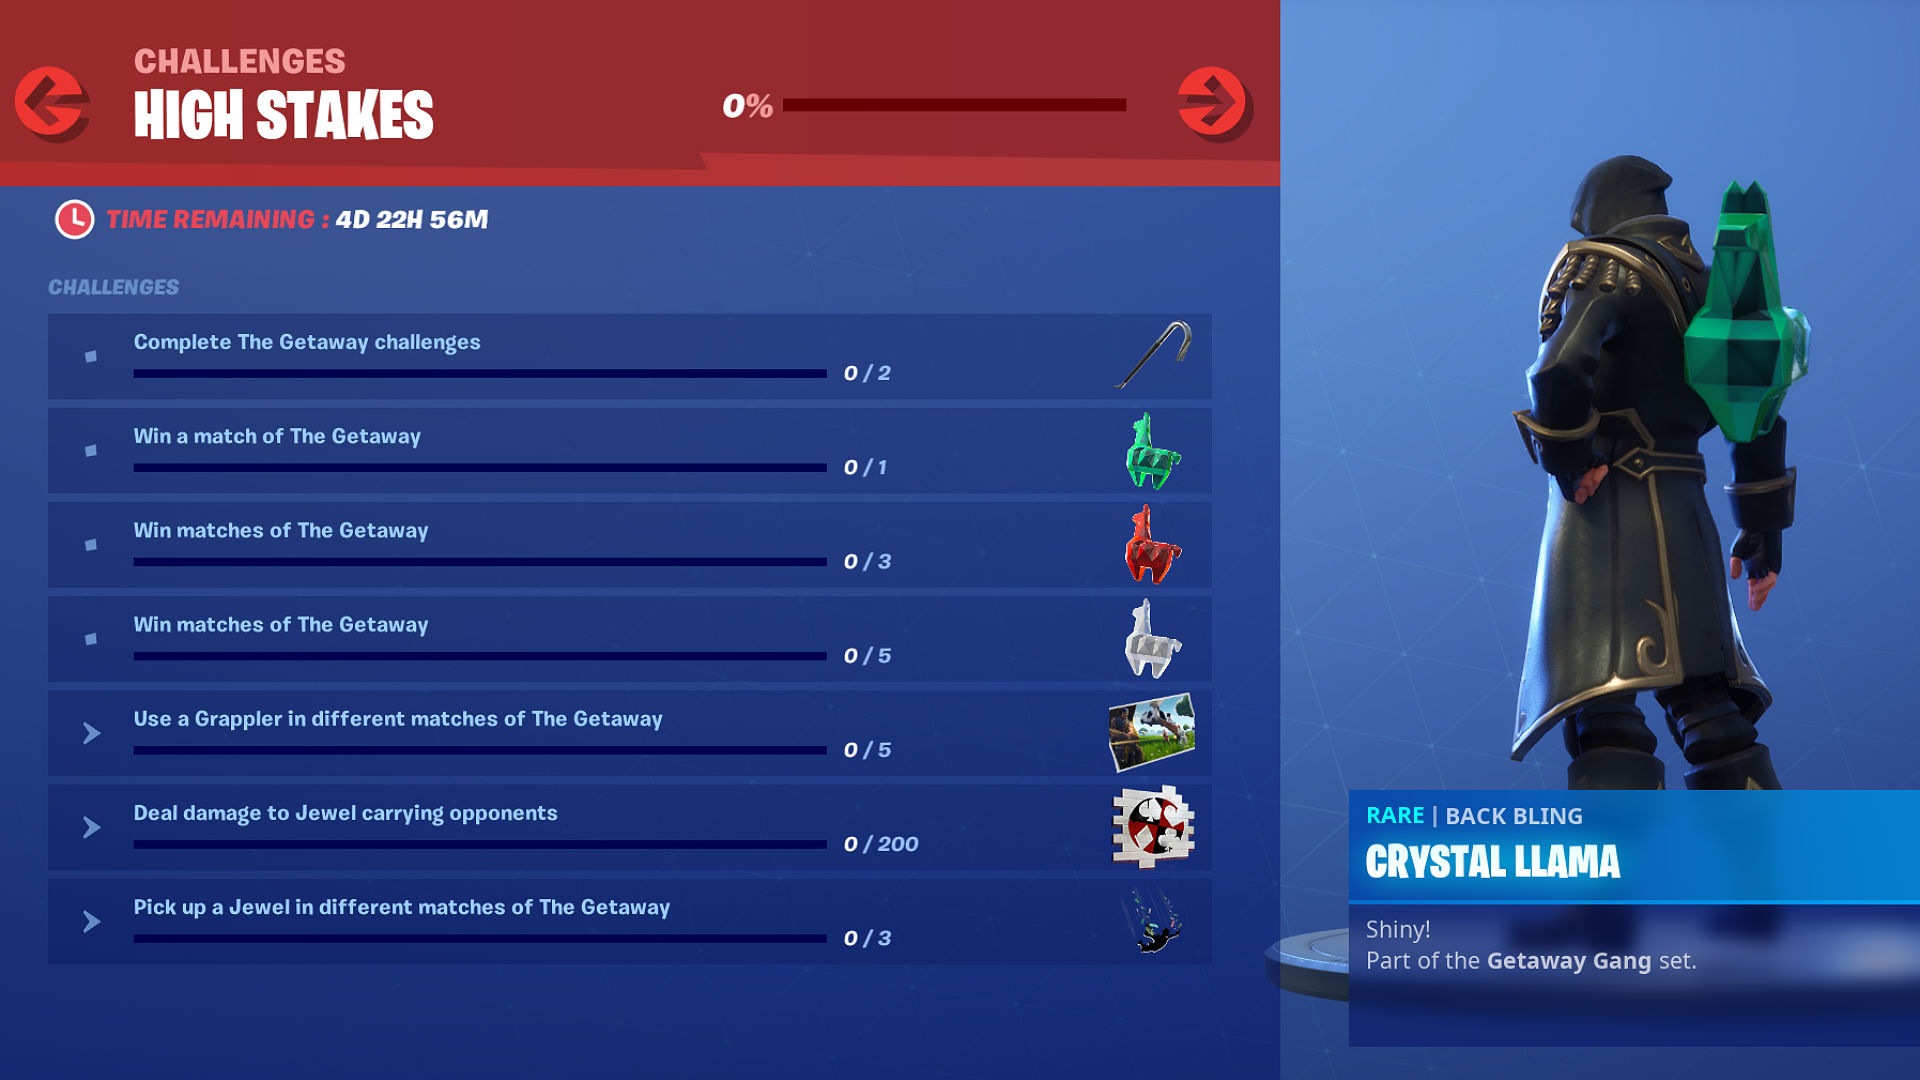 fortnite high stakes challenges - high stakes game mode fortnite